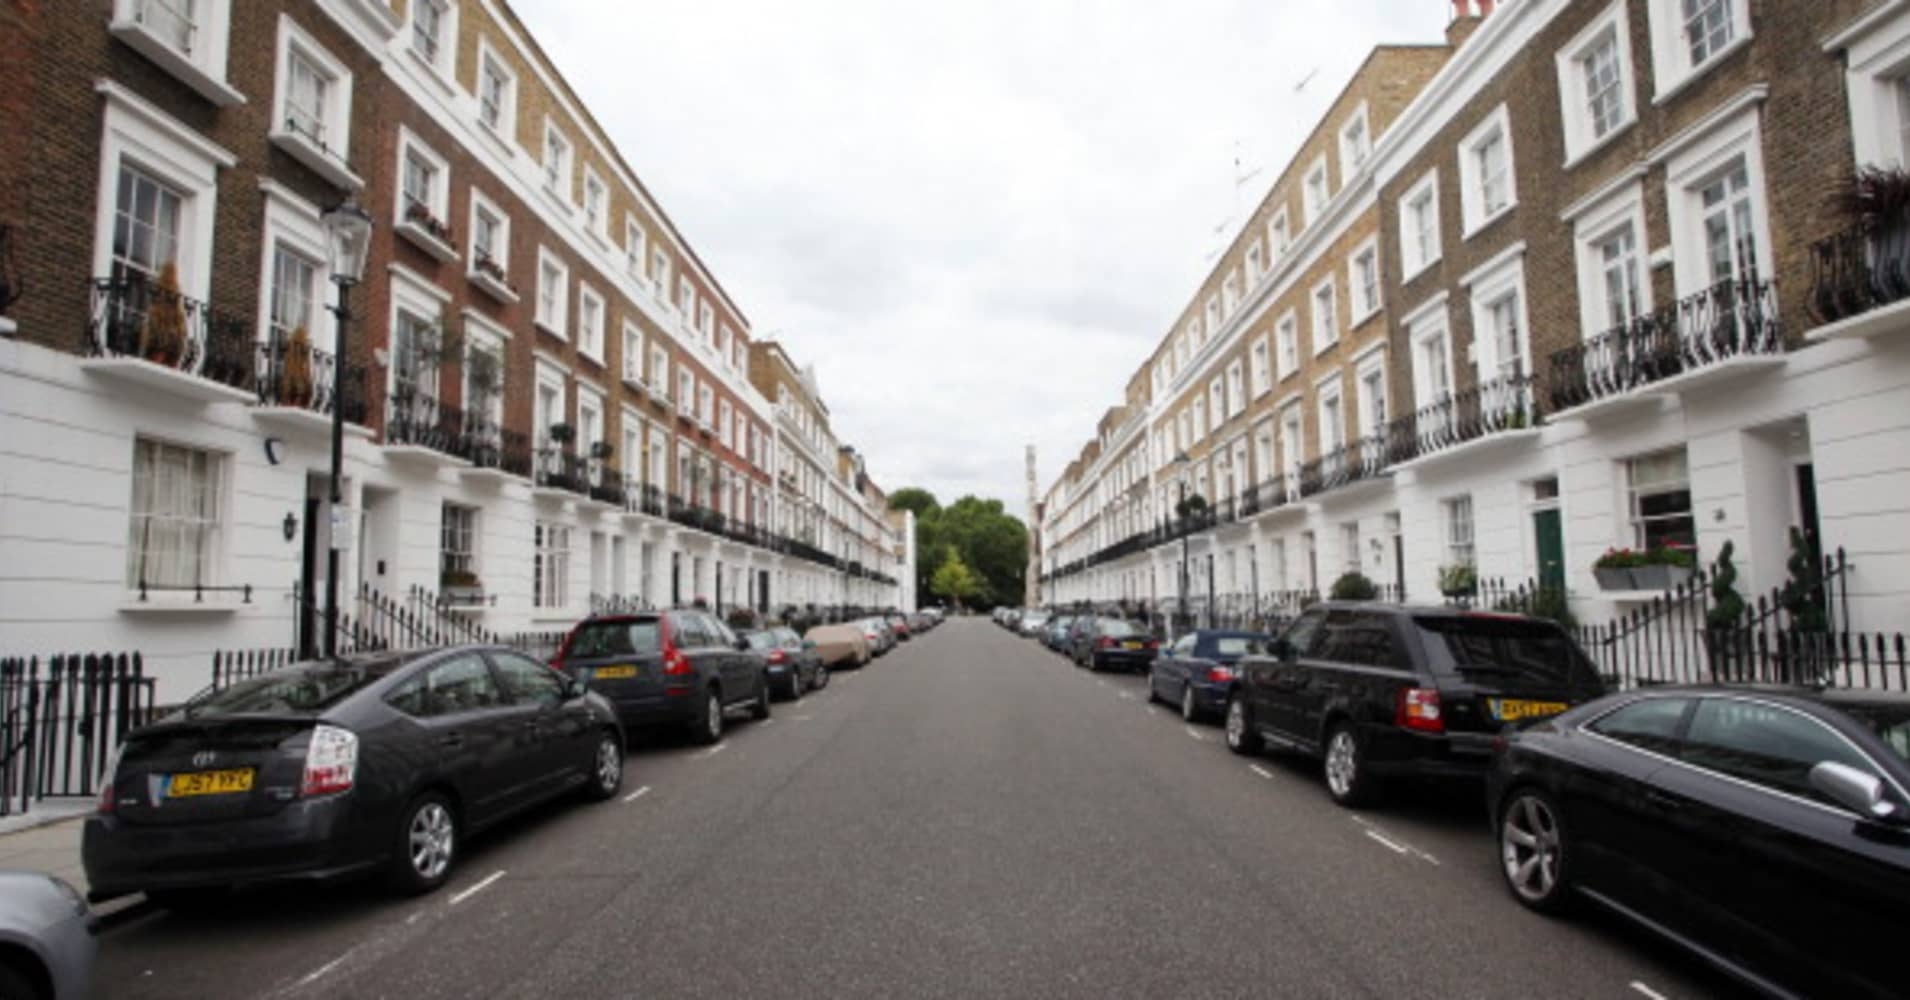 Dollar buyers are the big winners as prime London property tumbles